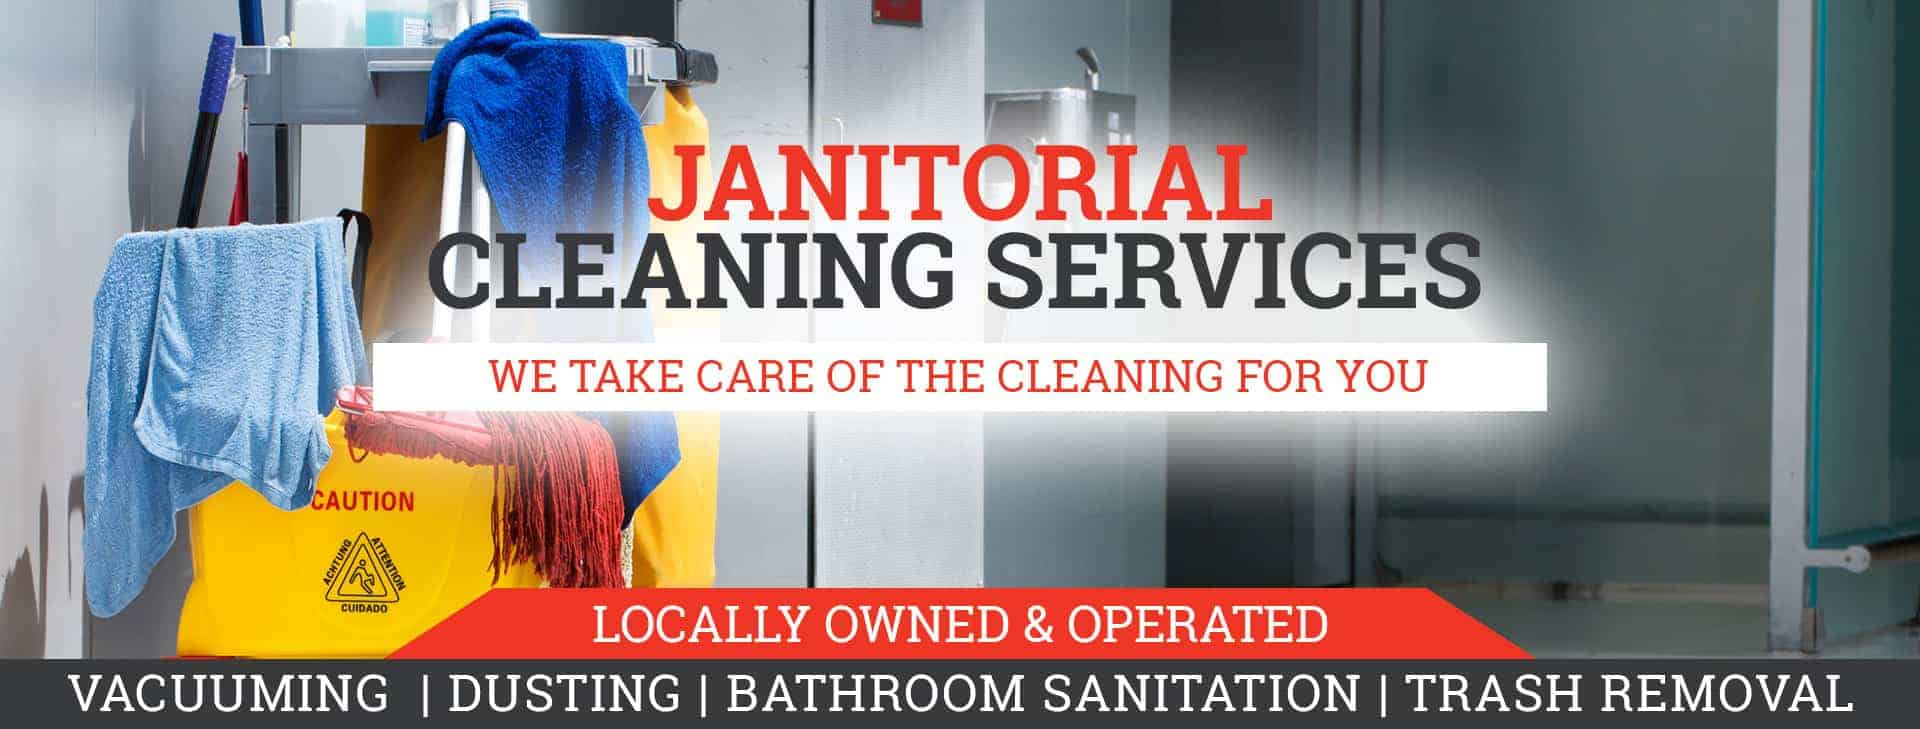 Menage Total Janitorial Services